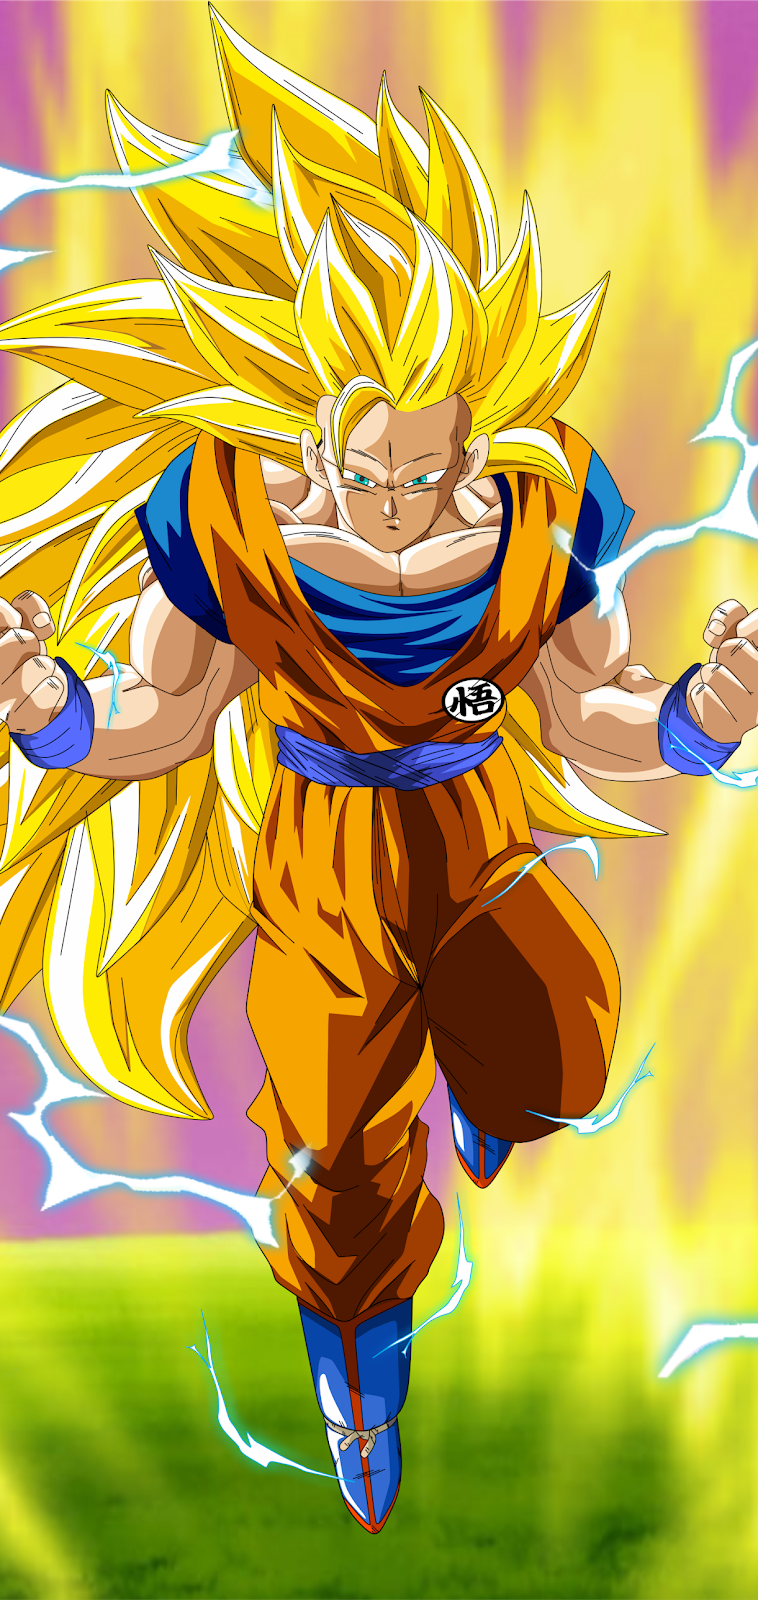 Goku Mobile Wallpaper